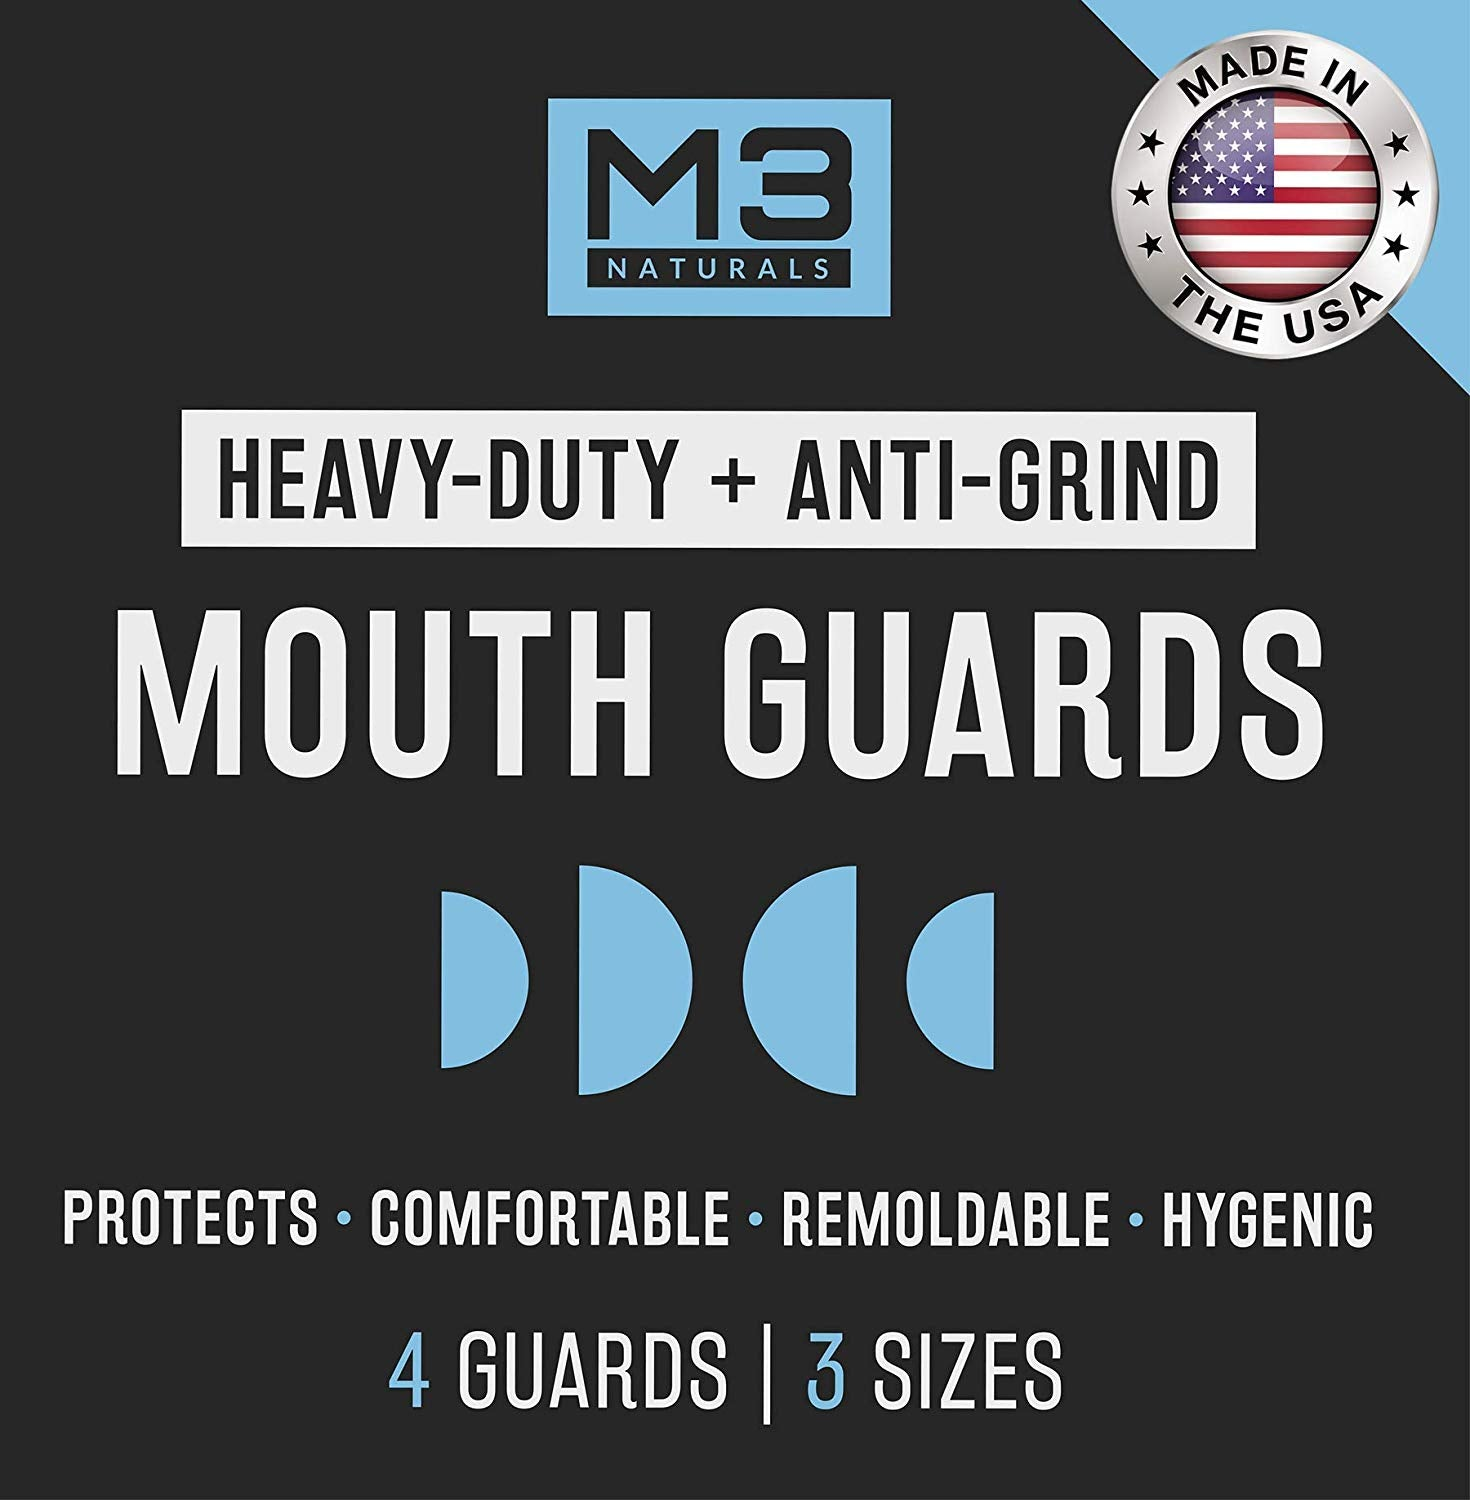 M3 Naturals Heavy Duty Mouth Guards for Teeth Grinding Clenching Bruxism Moldable Trimmable Retainer for Bite, Sleep, Sport Athletic, Mouthguard. Nightguard BPA Free 4 Guards 3 Sizes